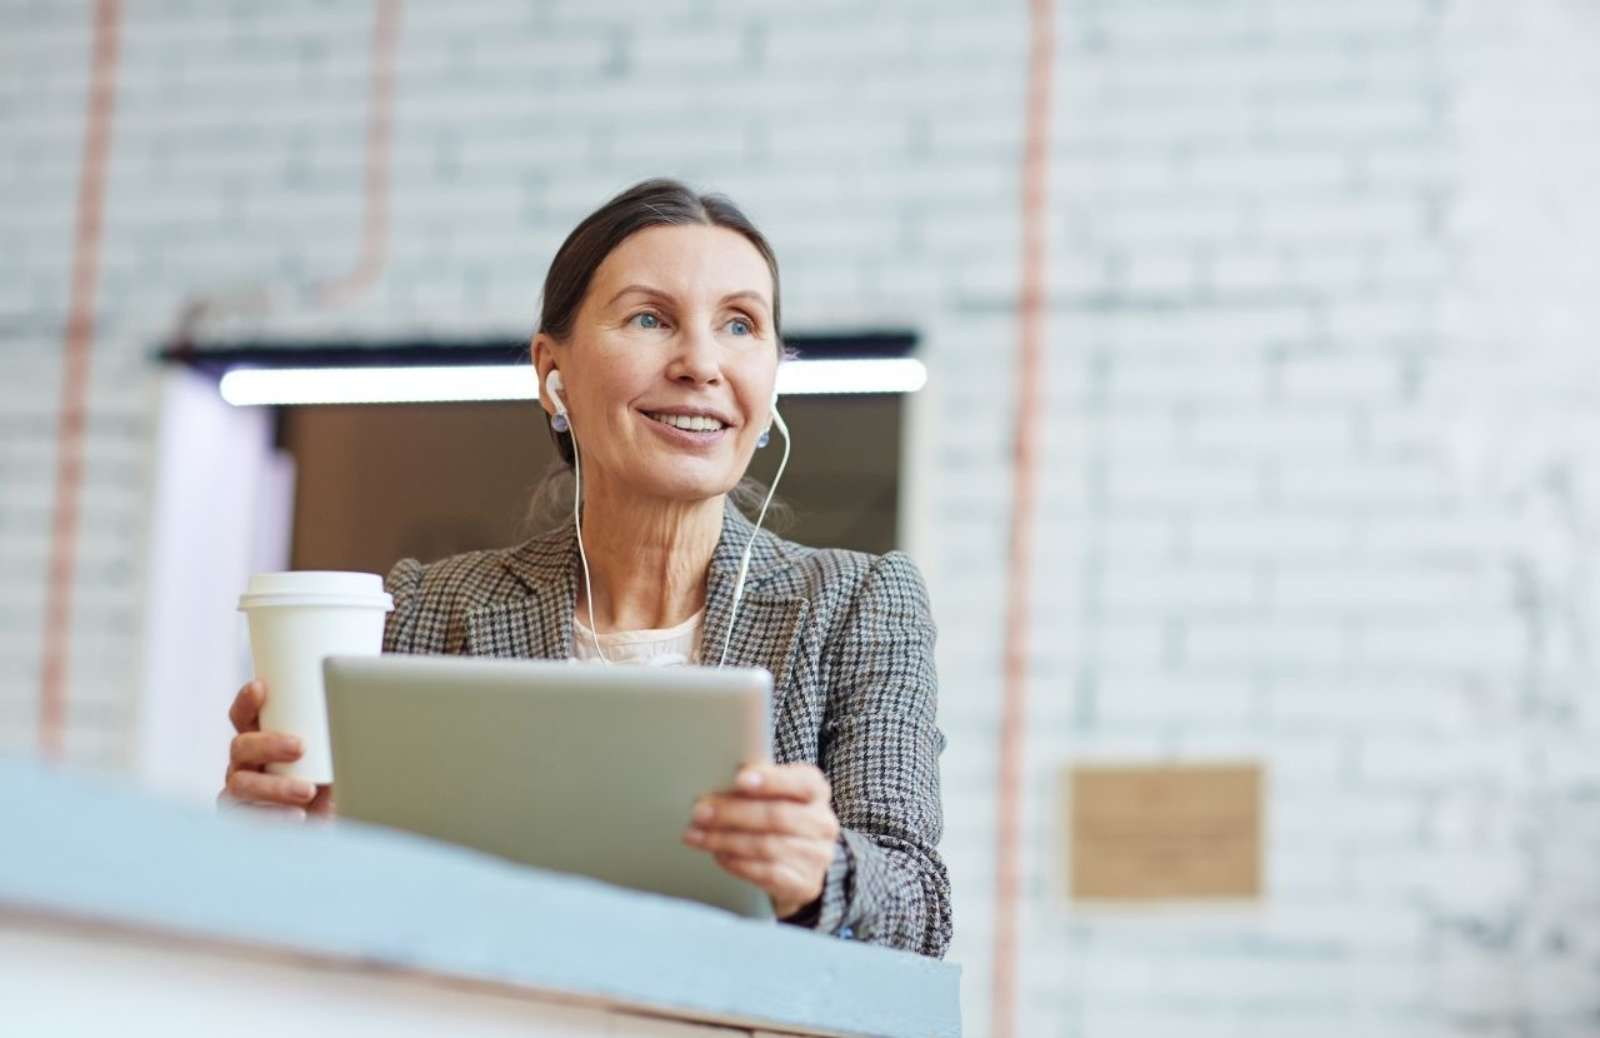 Woman wearing earphones, holding coffee cup and laptop computer screen